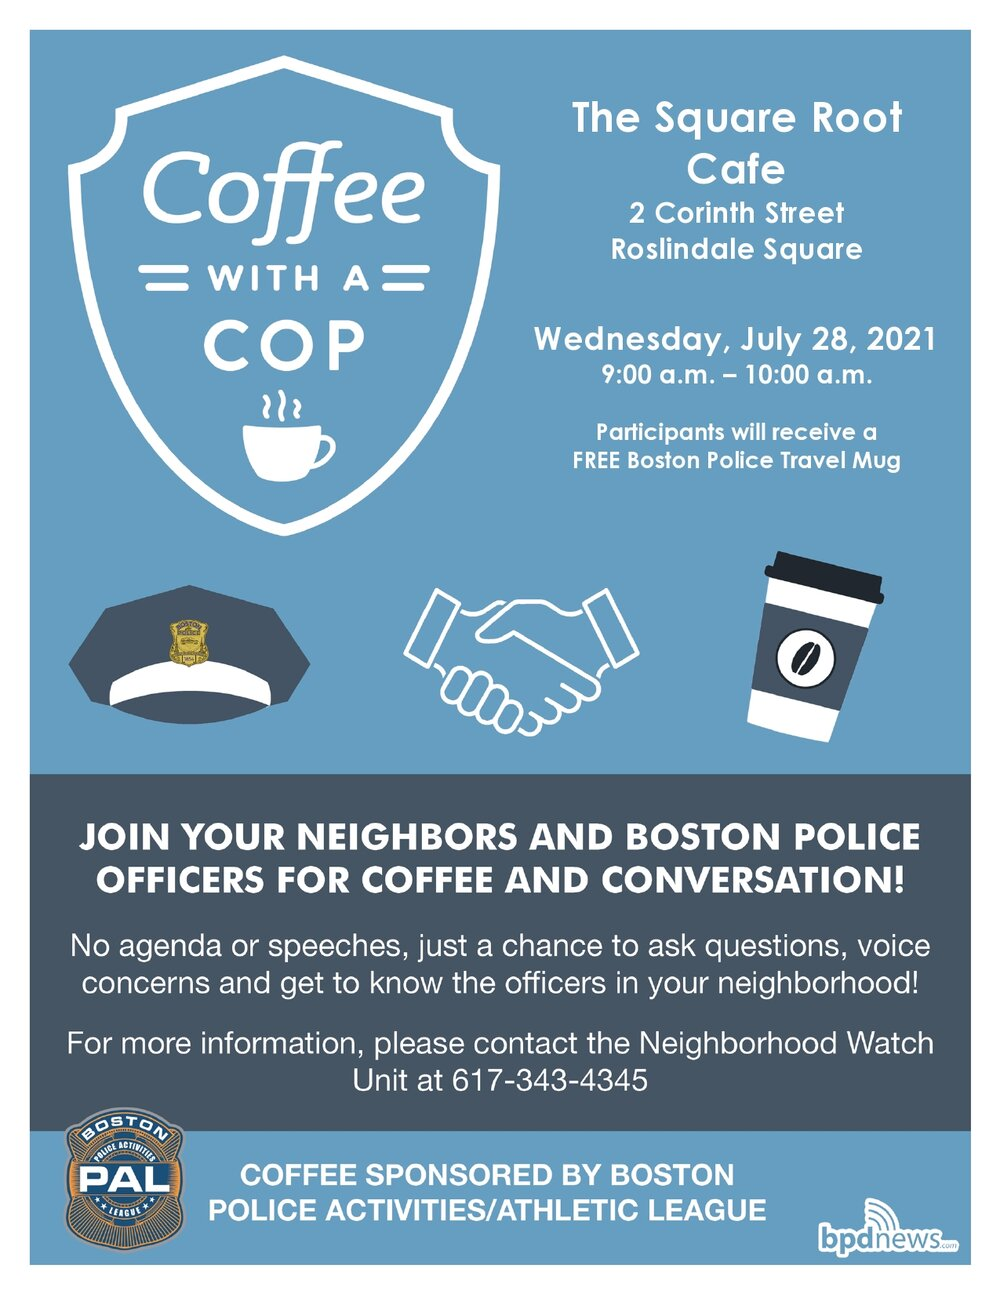 Coffee with a Cop: Please Join us at The Square Root Café located at 2 Corinth Street in Roslindale on Wednesday, July 28, 2021